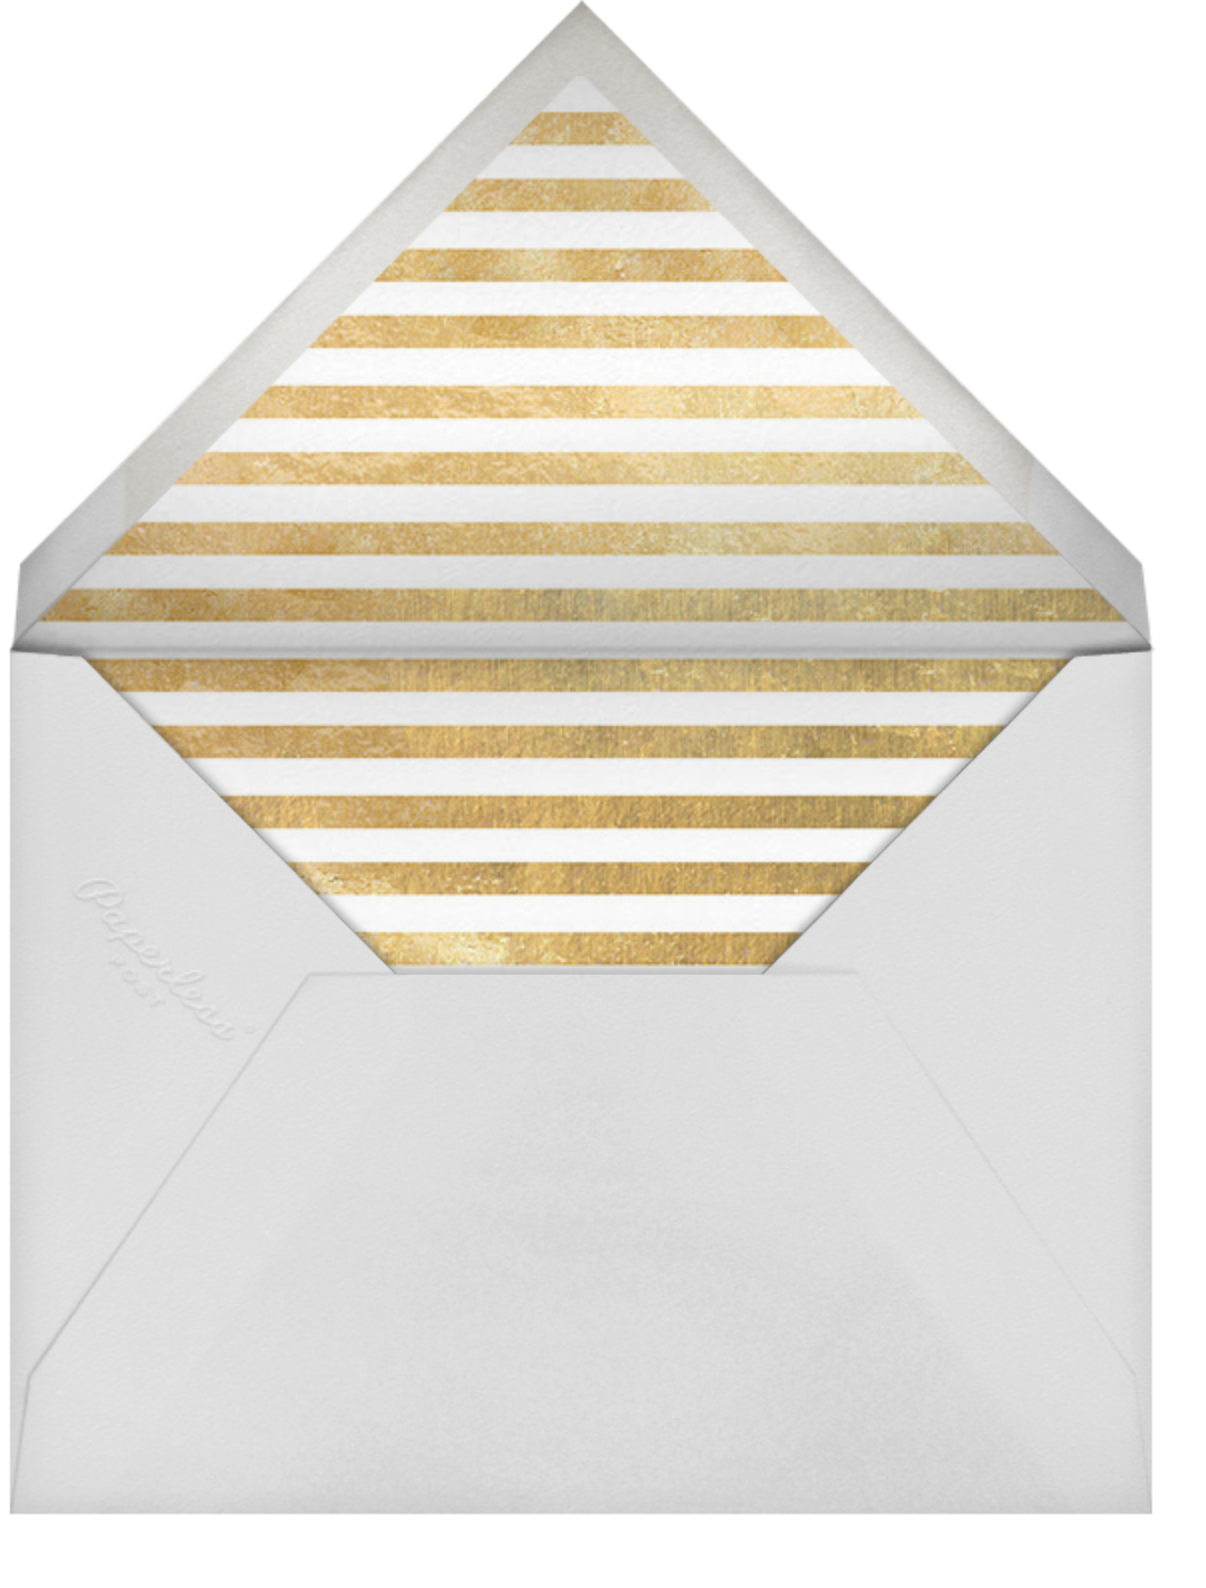 Confetti (Tall) - White/Gold - kate spade new york - Adult birthday - envelope back